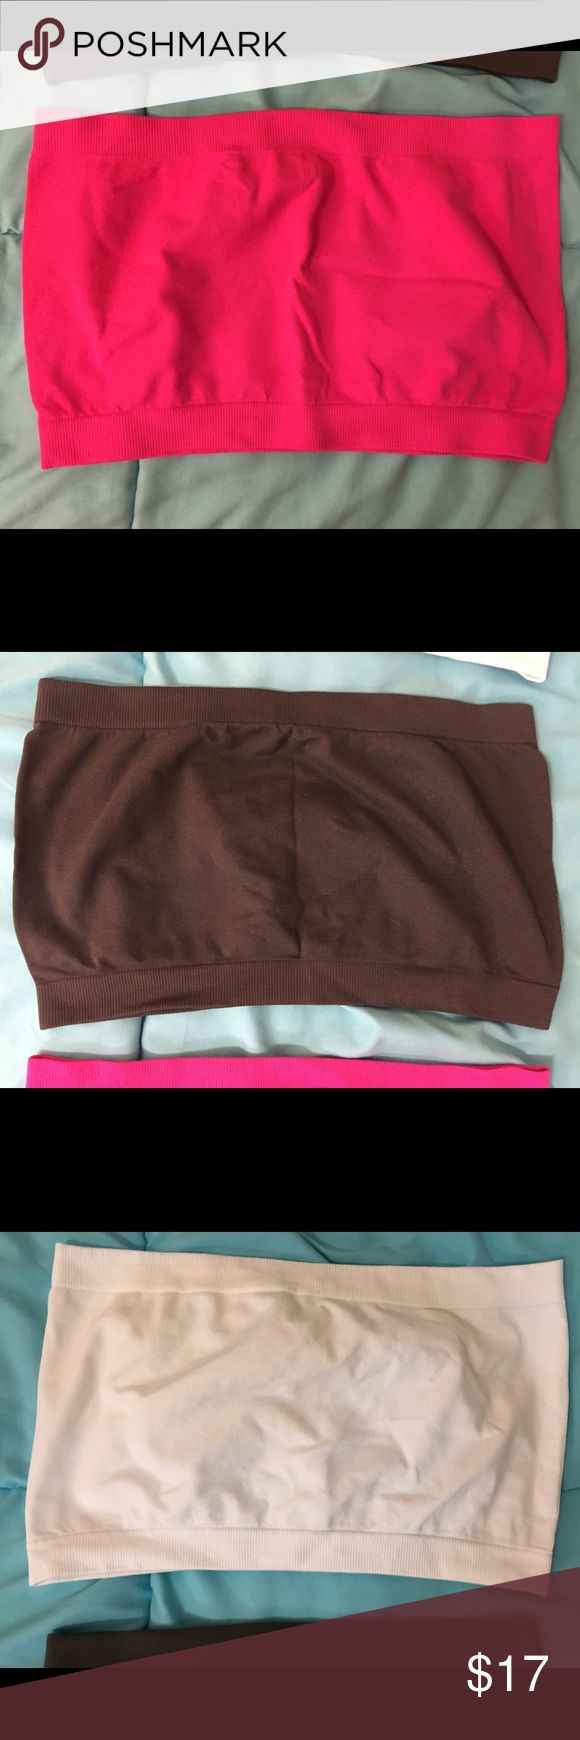 """3 Bandeaus (Pink, Charcoal Gray, White) Three bandeaus, one size fits most. I don't remember where they're from, so marked Forever 21 for exposure. Colors: pink, charcoal gray, white. $7 each or $17 for all three. Each only worn a couple of times, excellent used condition, but I cut most of the tags out because they were itchy. Bundle 2 or more items for 10% off, and feel free to make an offer! If you want to know my measurements, check my """"Meet Your Posher"""" listing! If you have any other…"""